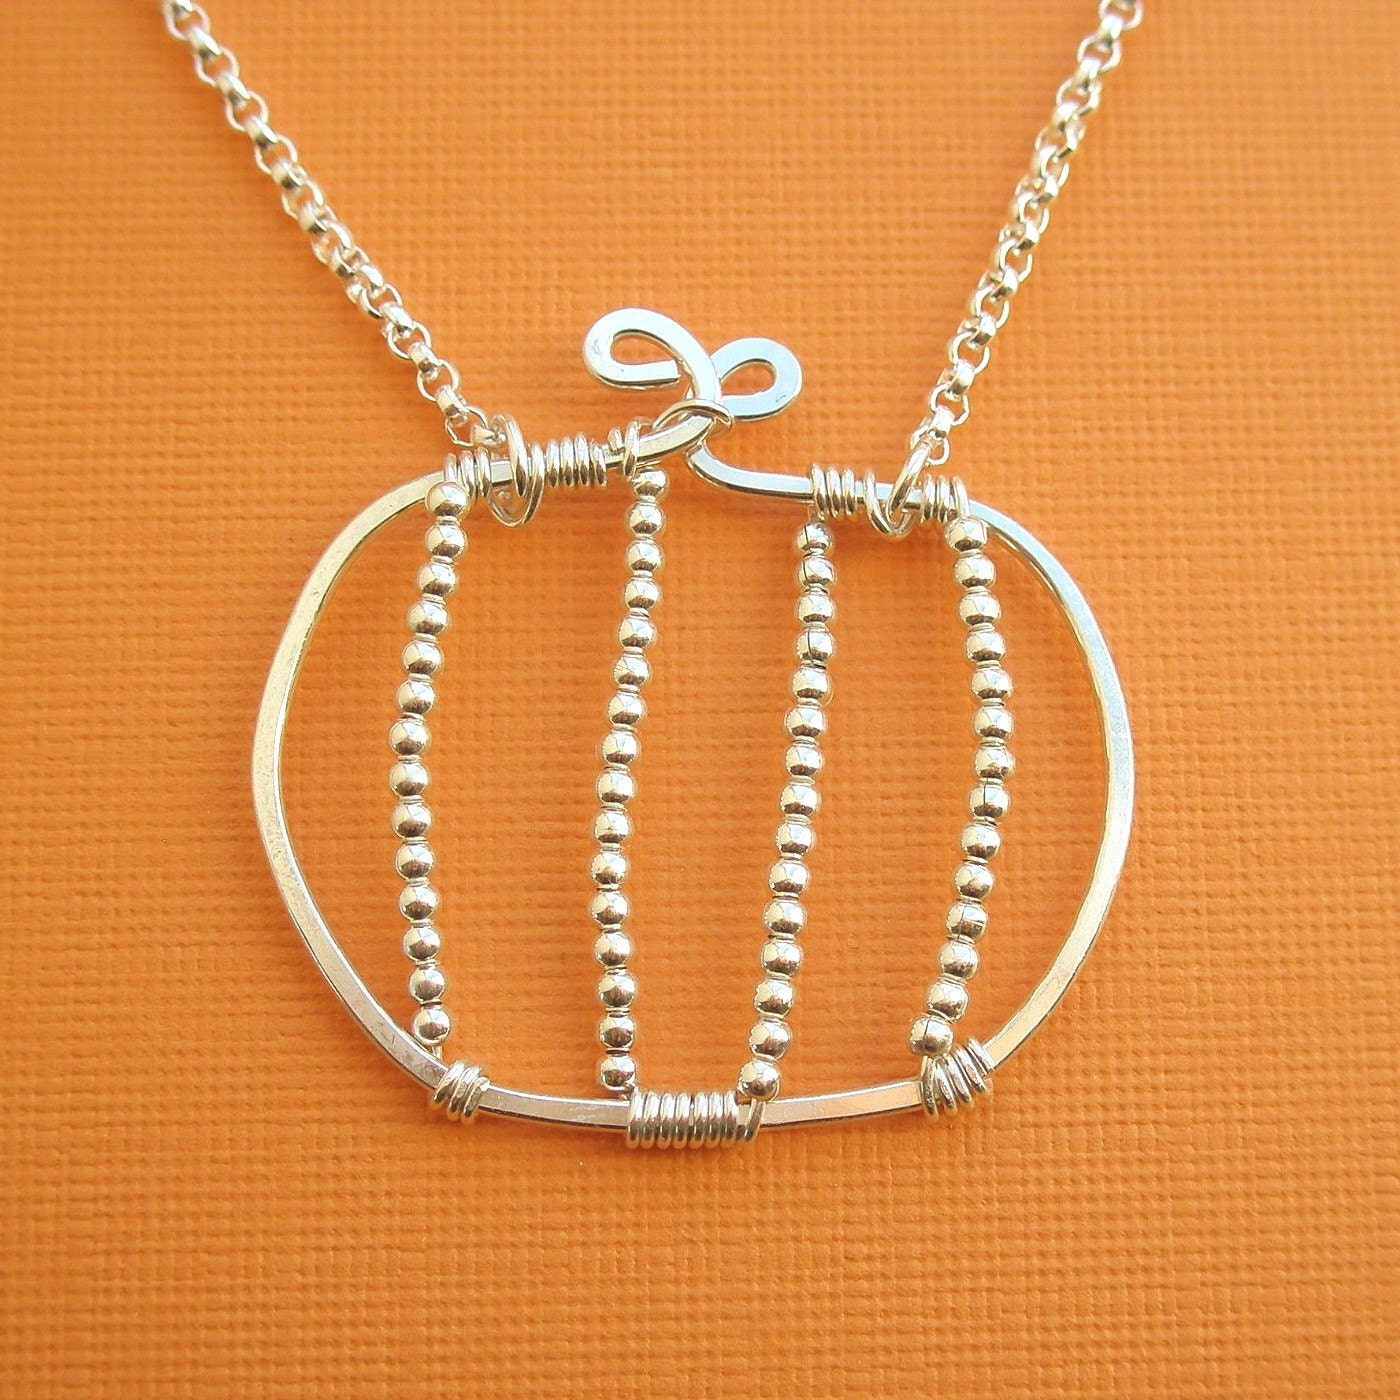 pumpkin necklace all sterling silver